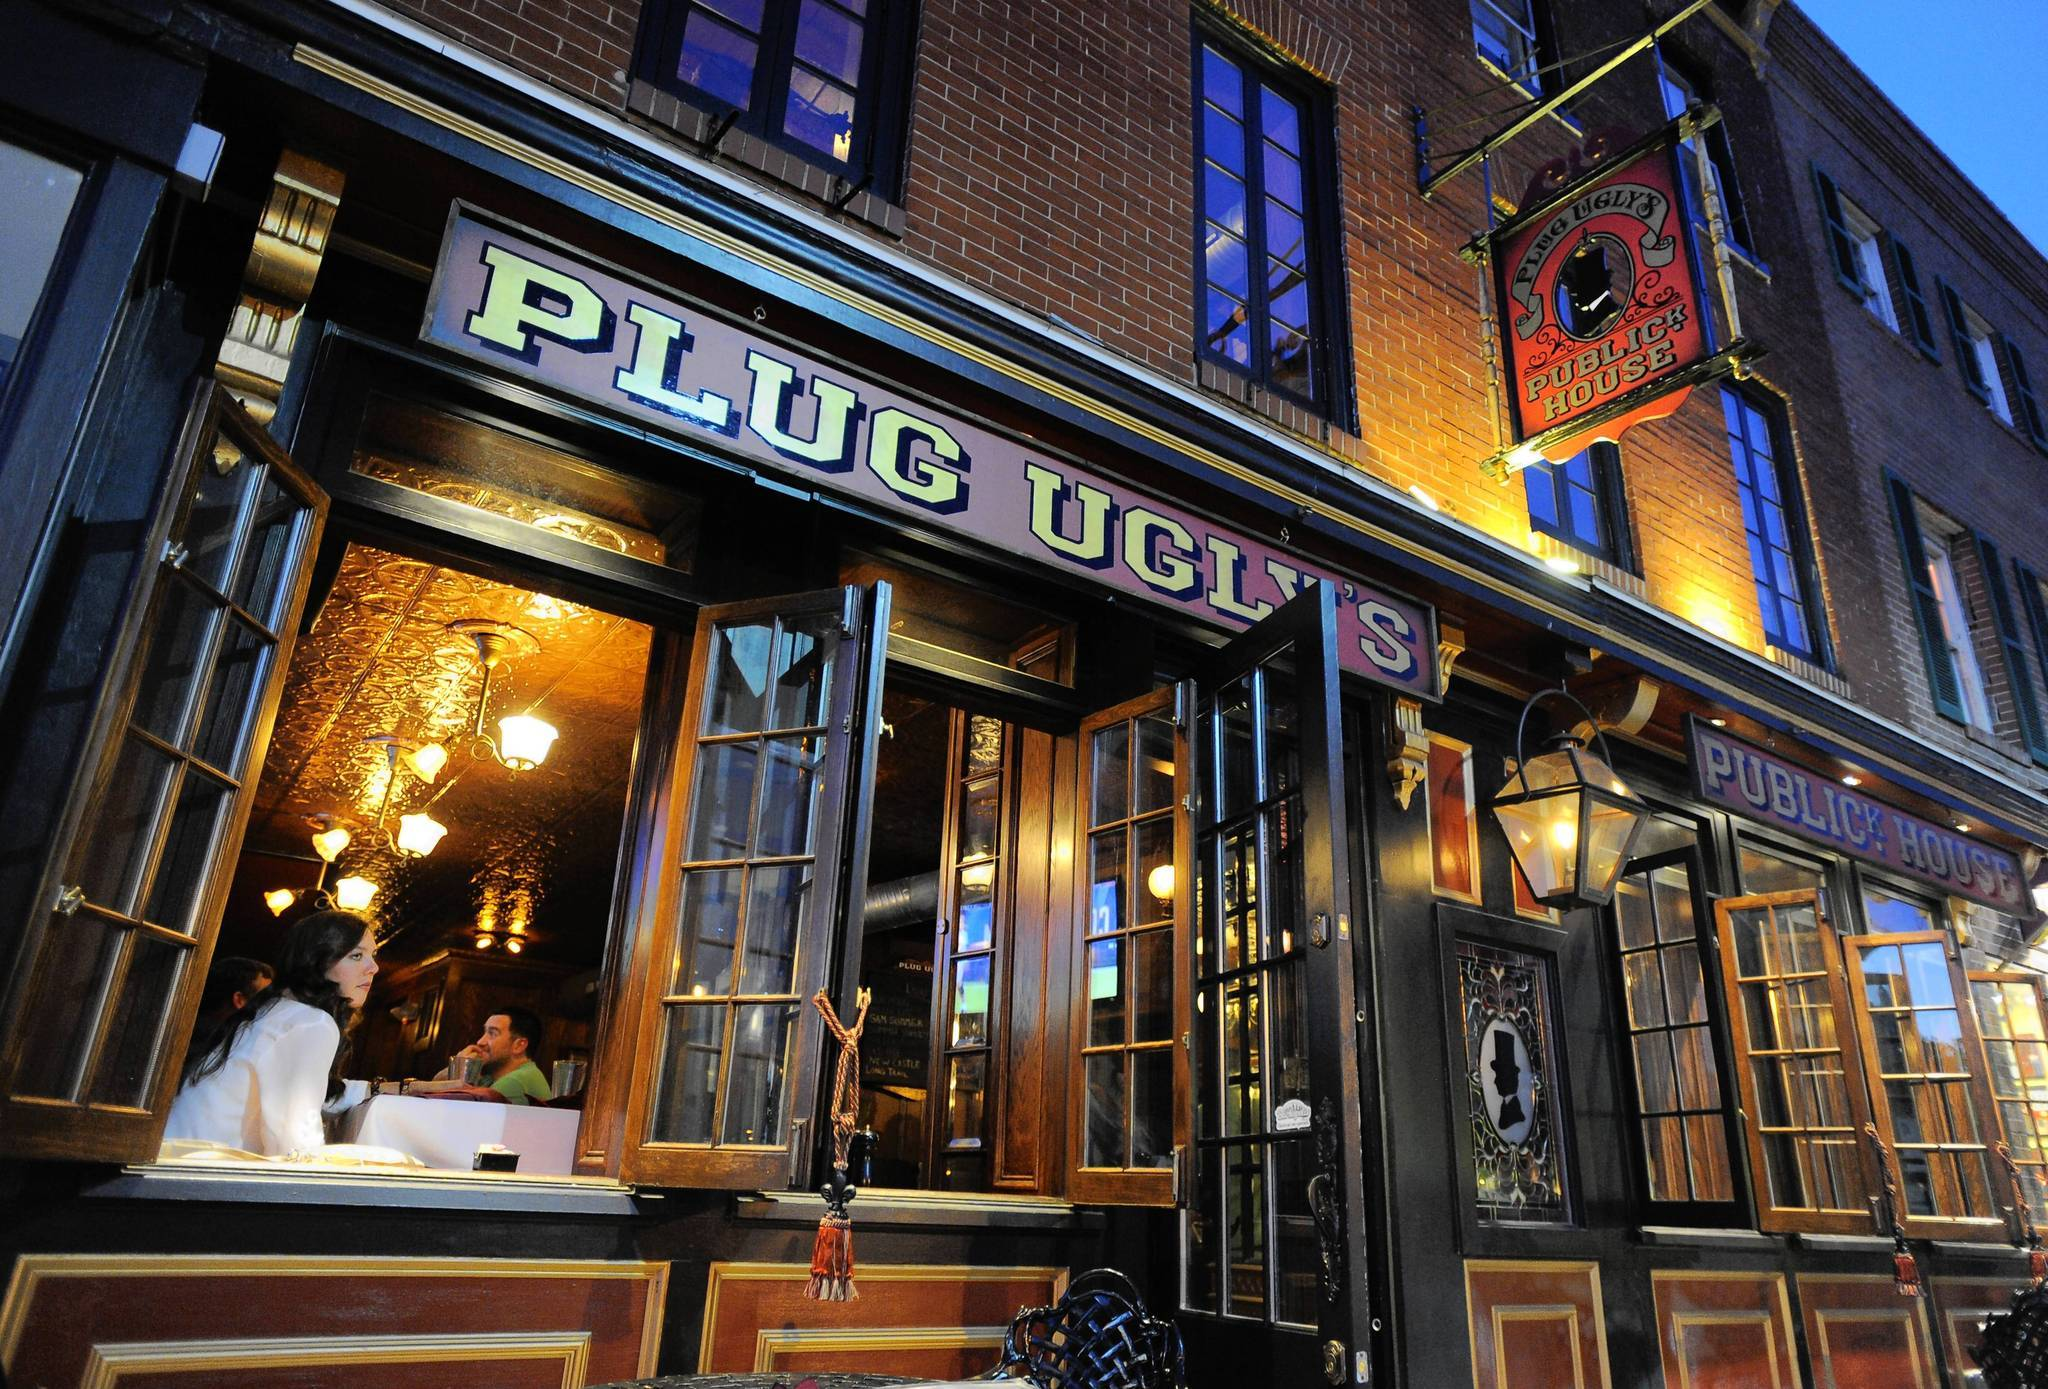 The exterior of Plug Ugly's Publick House in Canton.